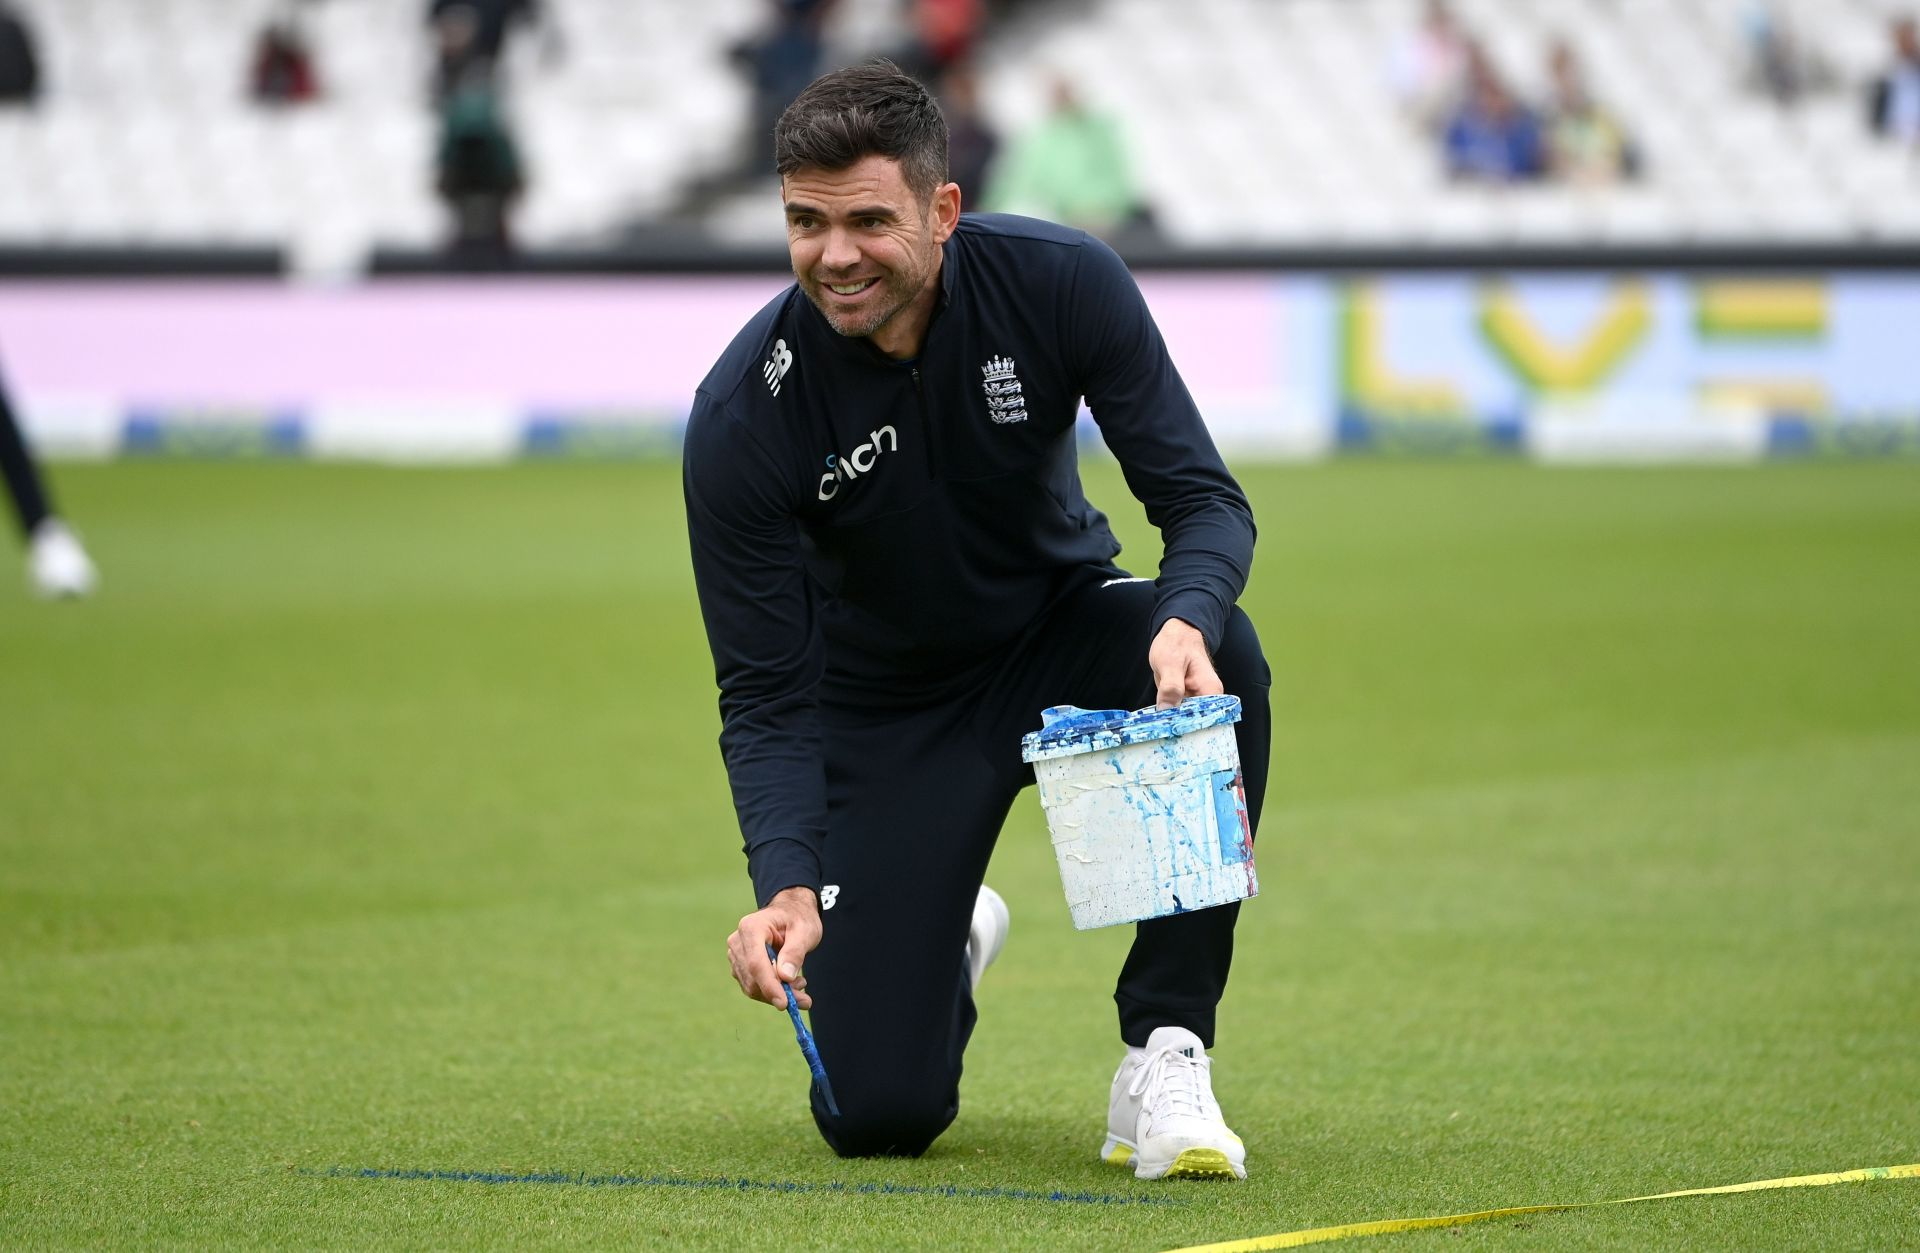 James Anderson. (Image Credits: Getty)